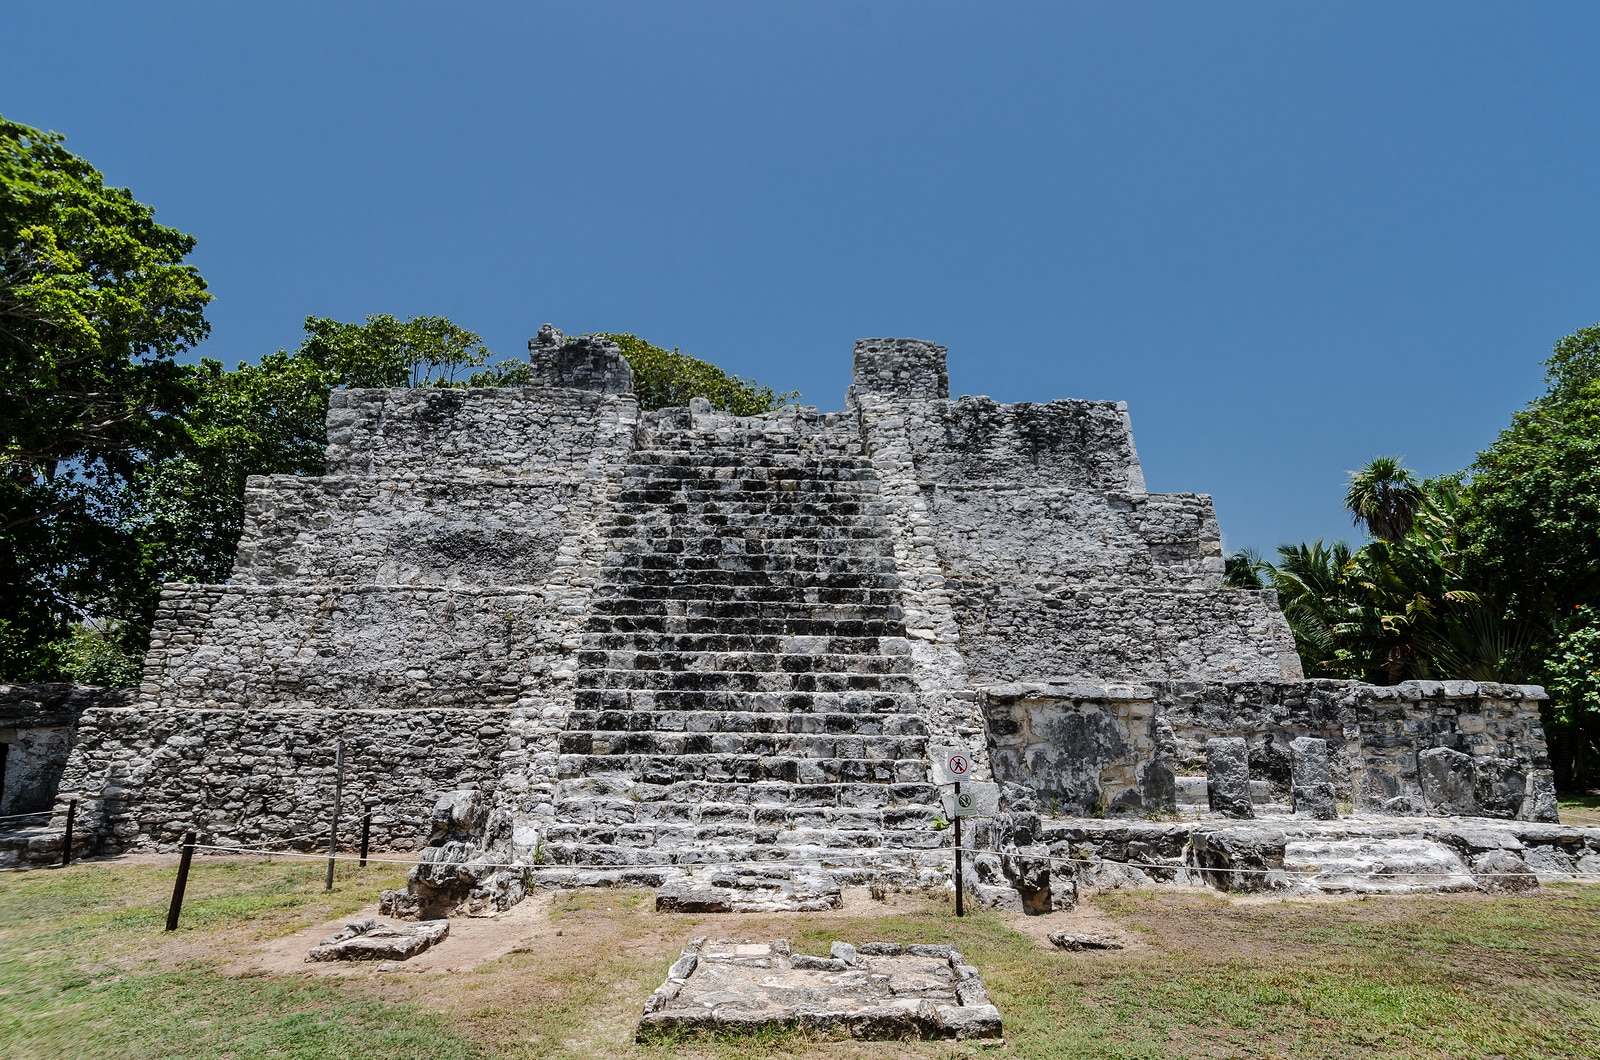 El Meco Mayan Ancient City, Located In Cancn, Quintana Roo, by Krystal International Vacation Club